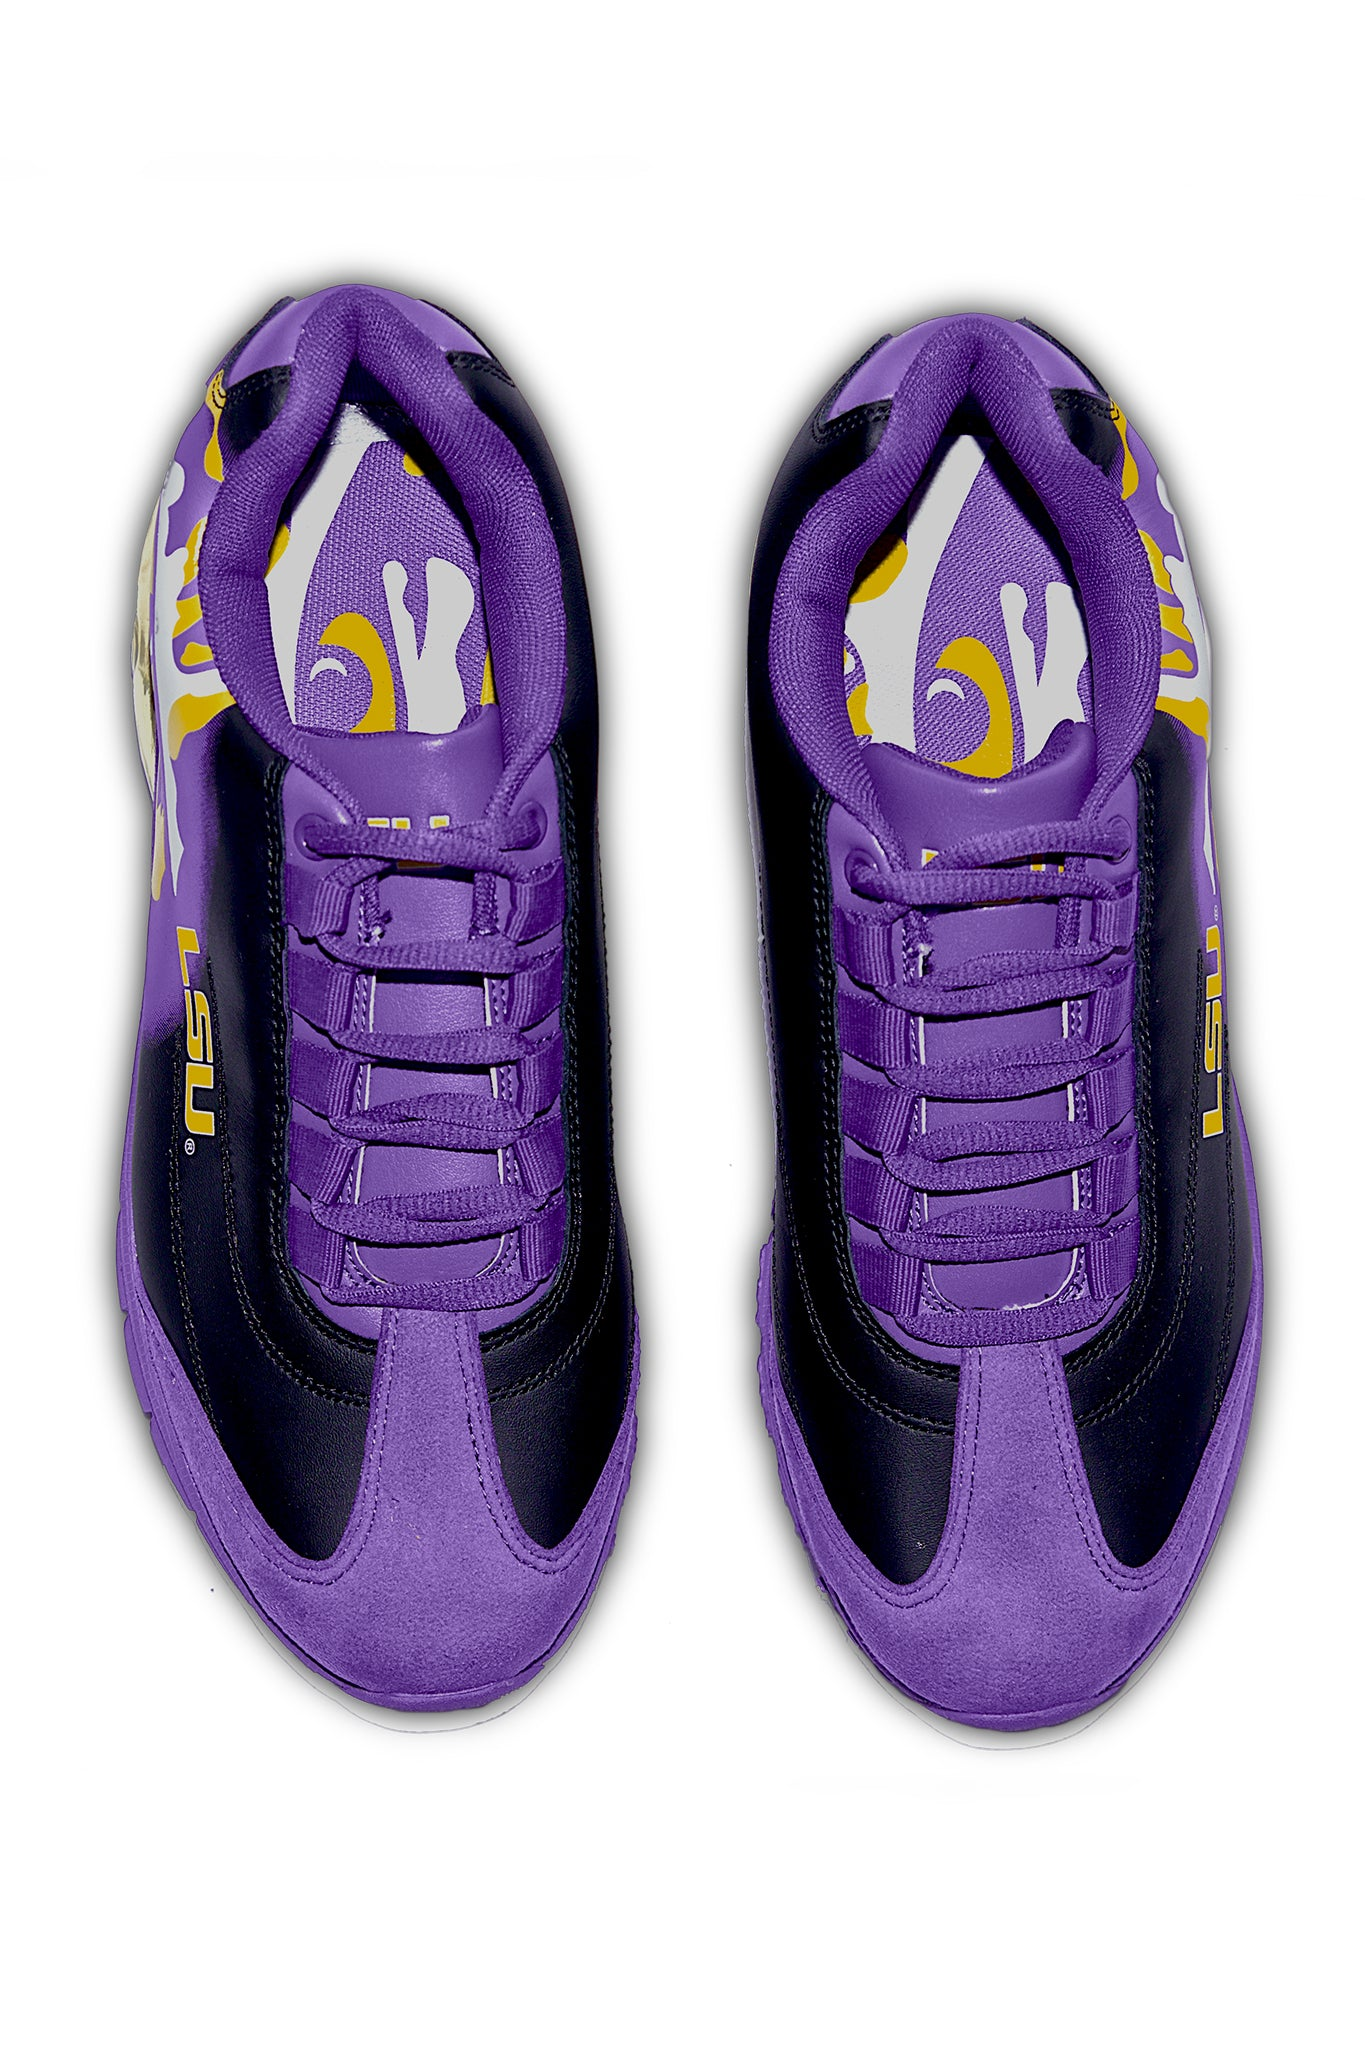 LSU TIGERS MEN'S COLLEGIATE SNEAKER-PURPLE PRE-ORDER NOW